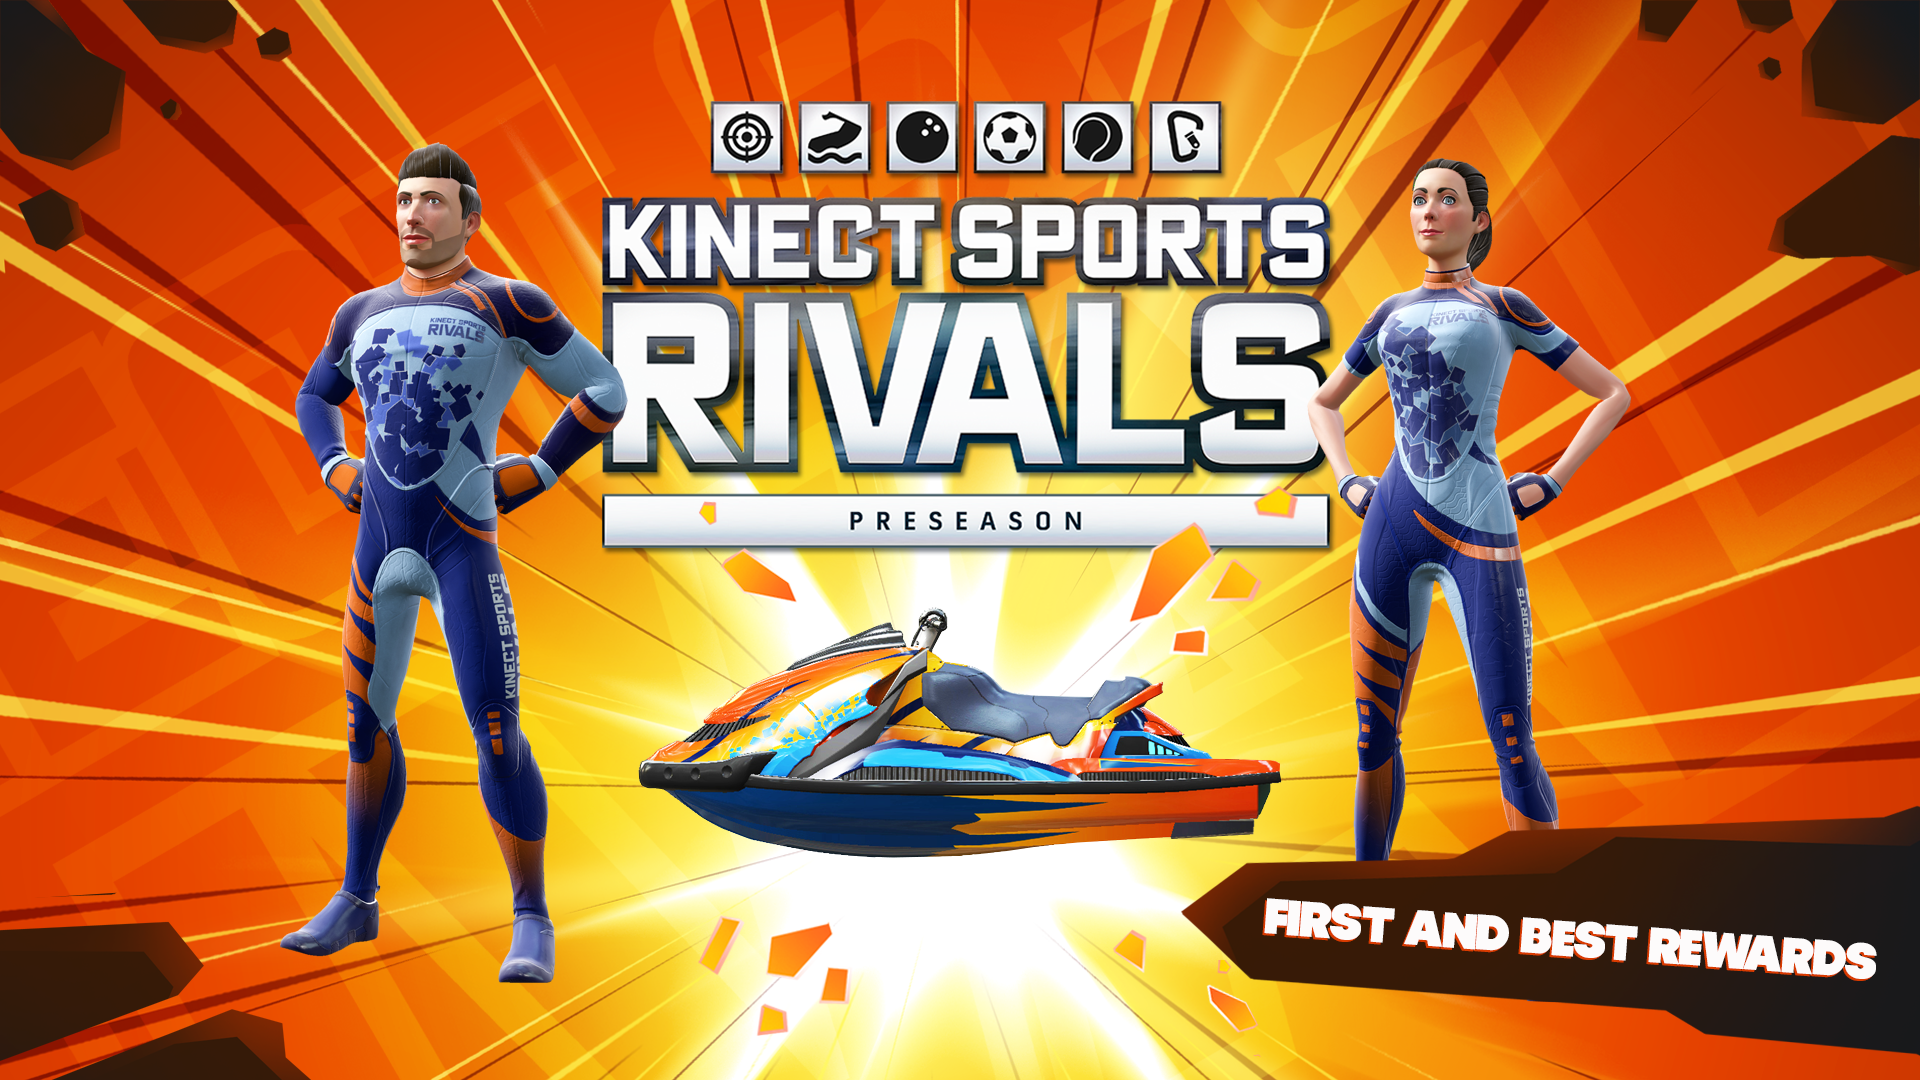 Kinect Sports Rivals free 'Preseason' available at Xbox One